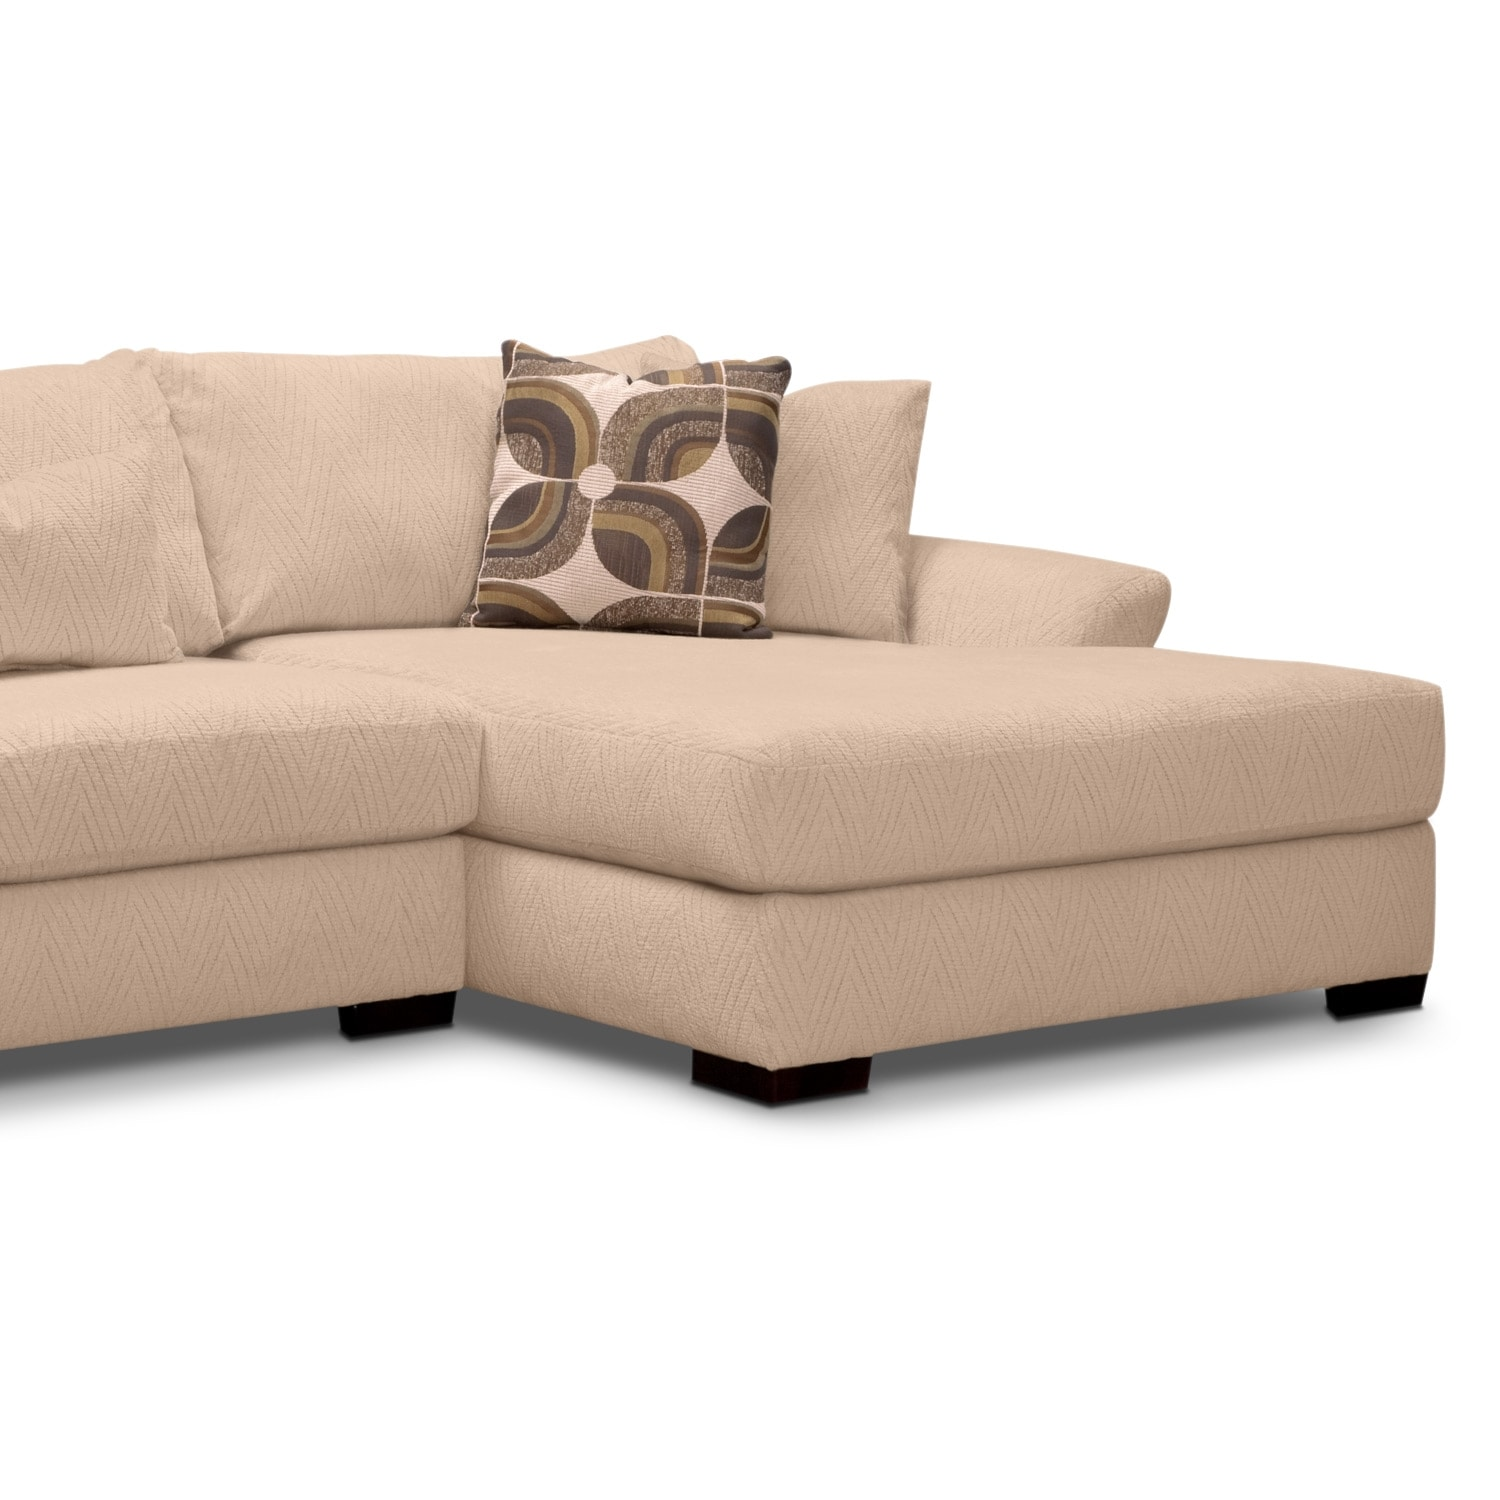 Orleans cream upholstery 2 pc sectional reverse for Sectional sofas new orleans